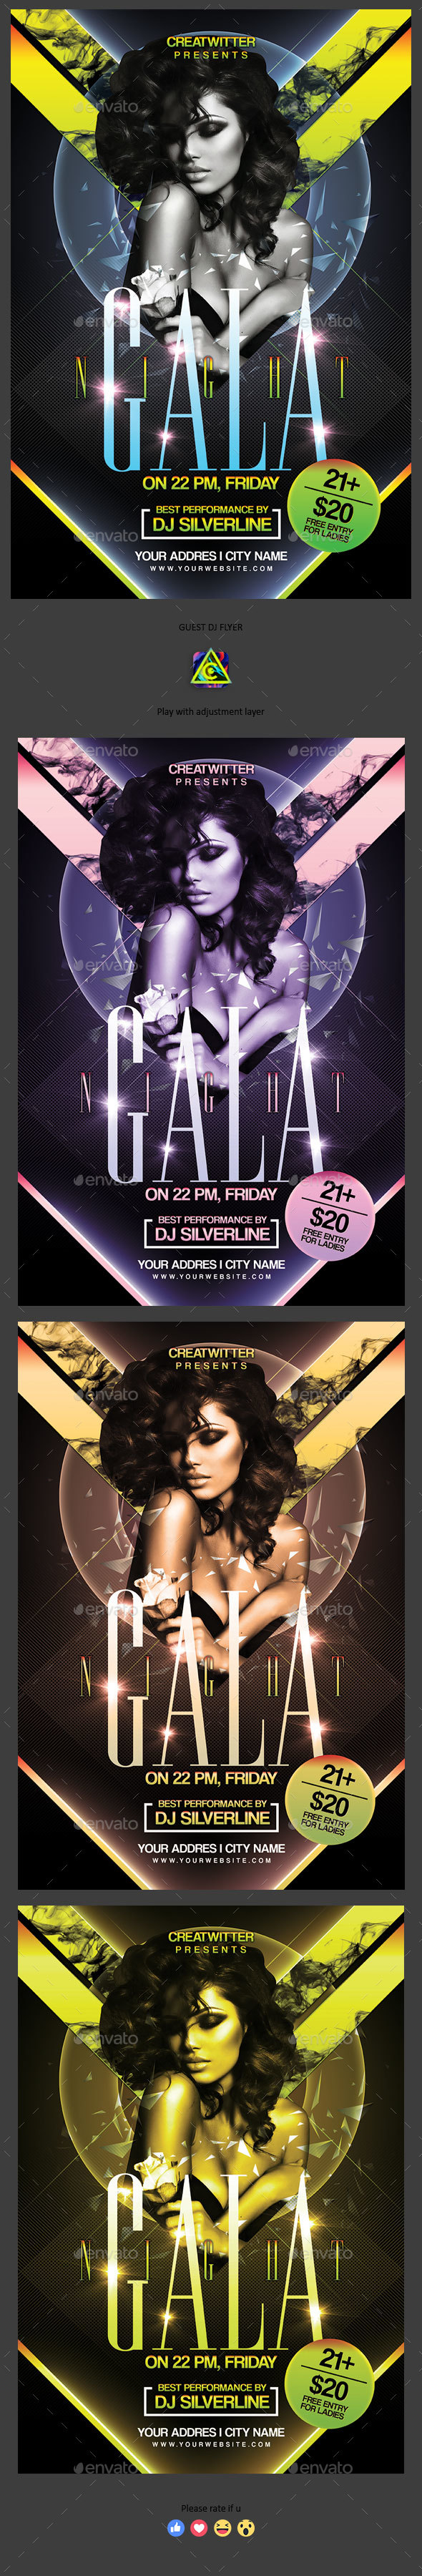 Gala Night Flyer - Clubs & Parties Events